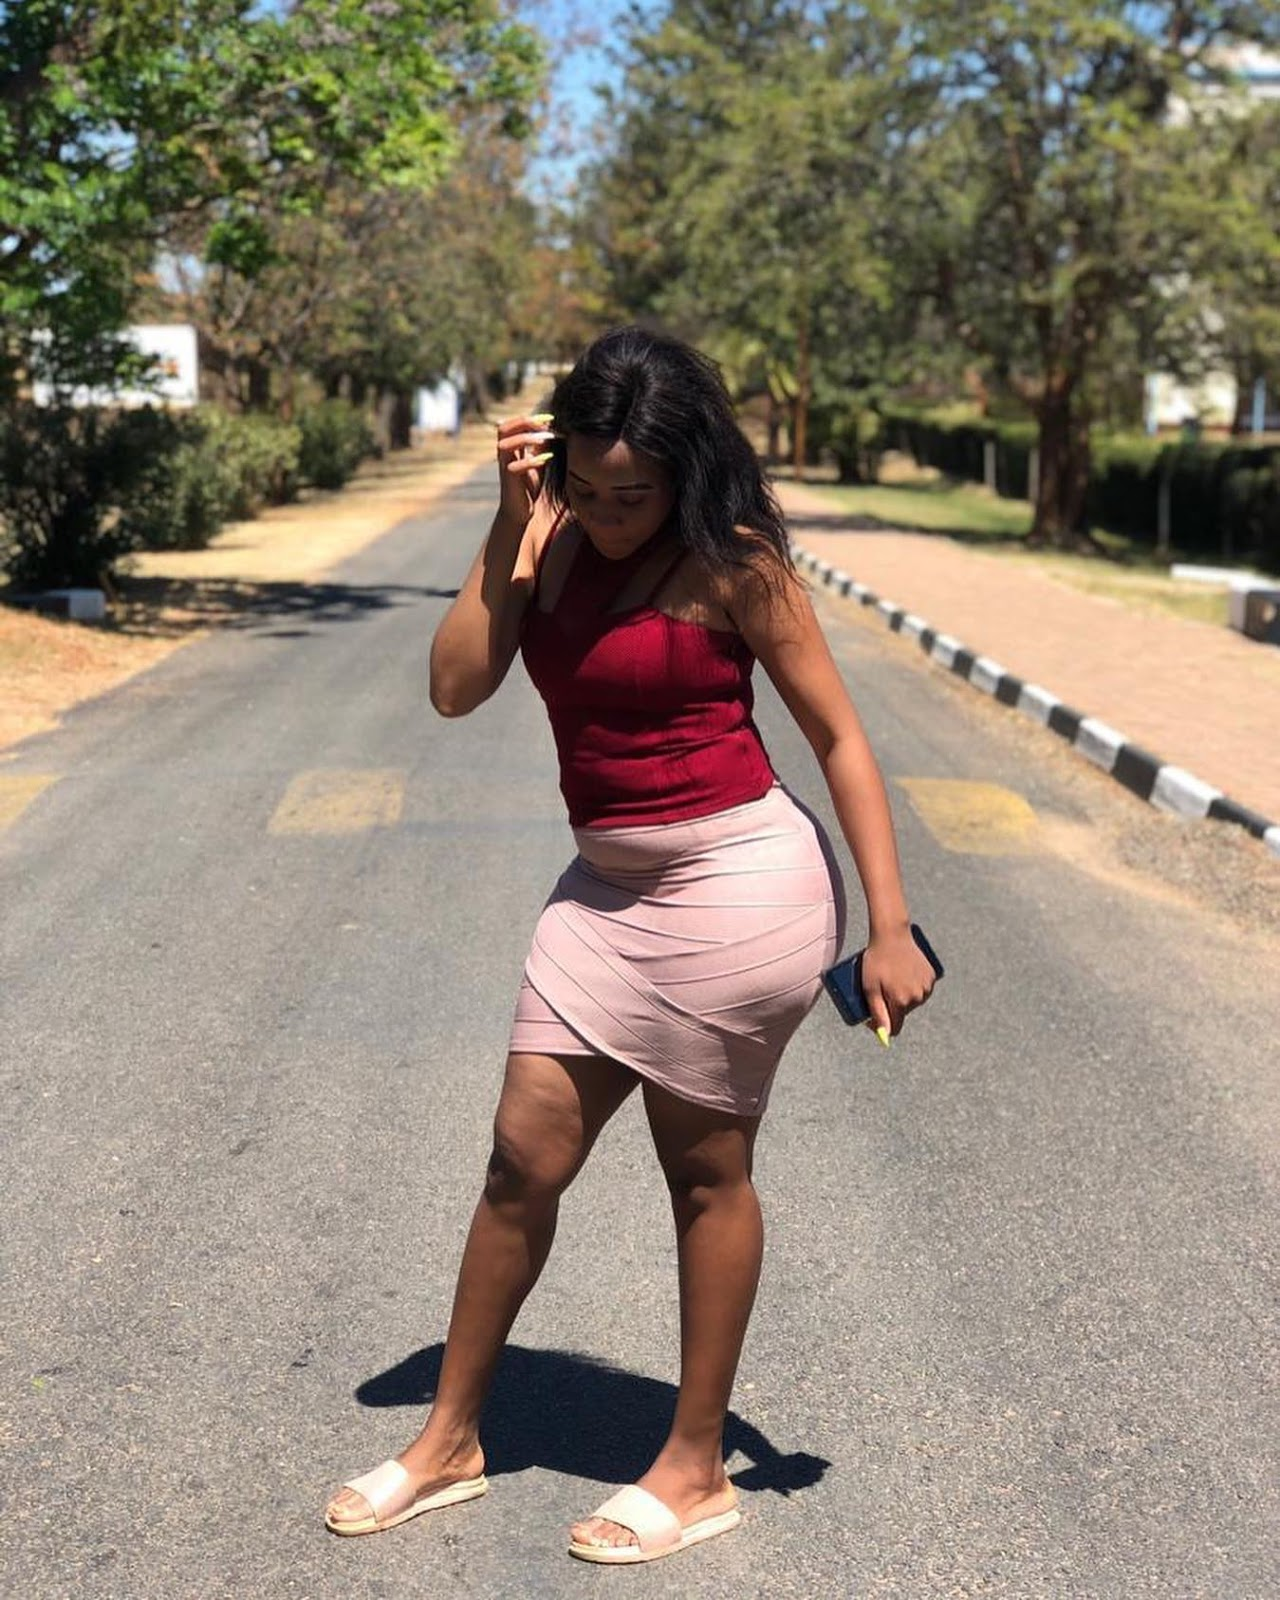 Pictures: MSU First Year Student Turns Lecturers' Heads With Beautiful Body!